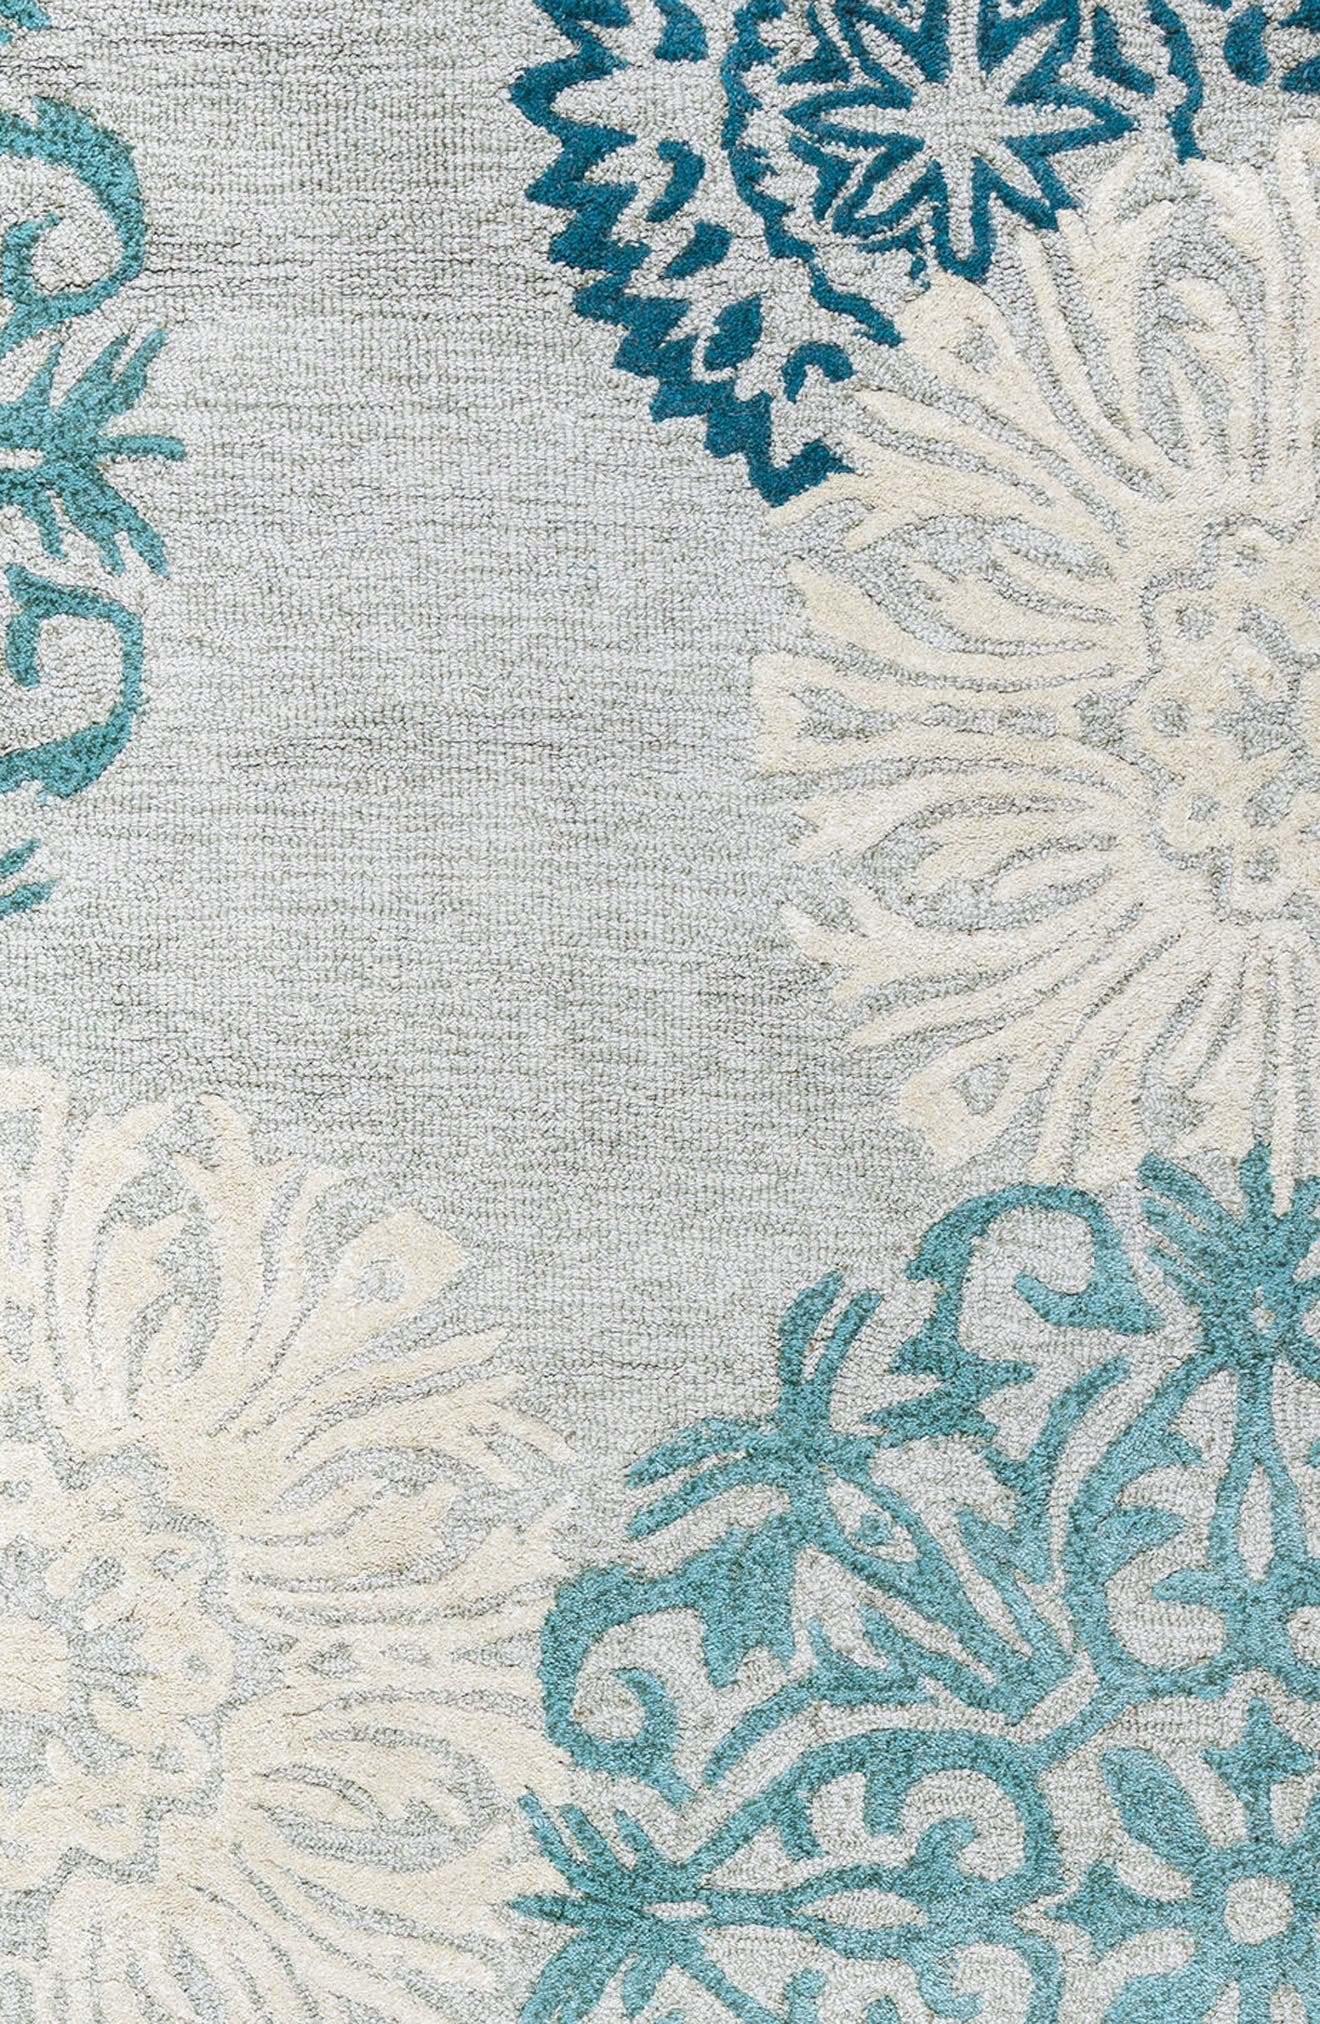 'Dimensional' Wool Area Rug,                             Alternate thumbnail 4, color,                             Light Blue/ Grey